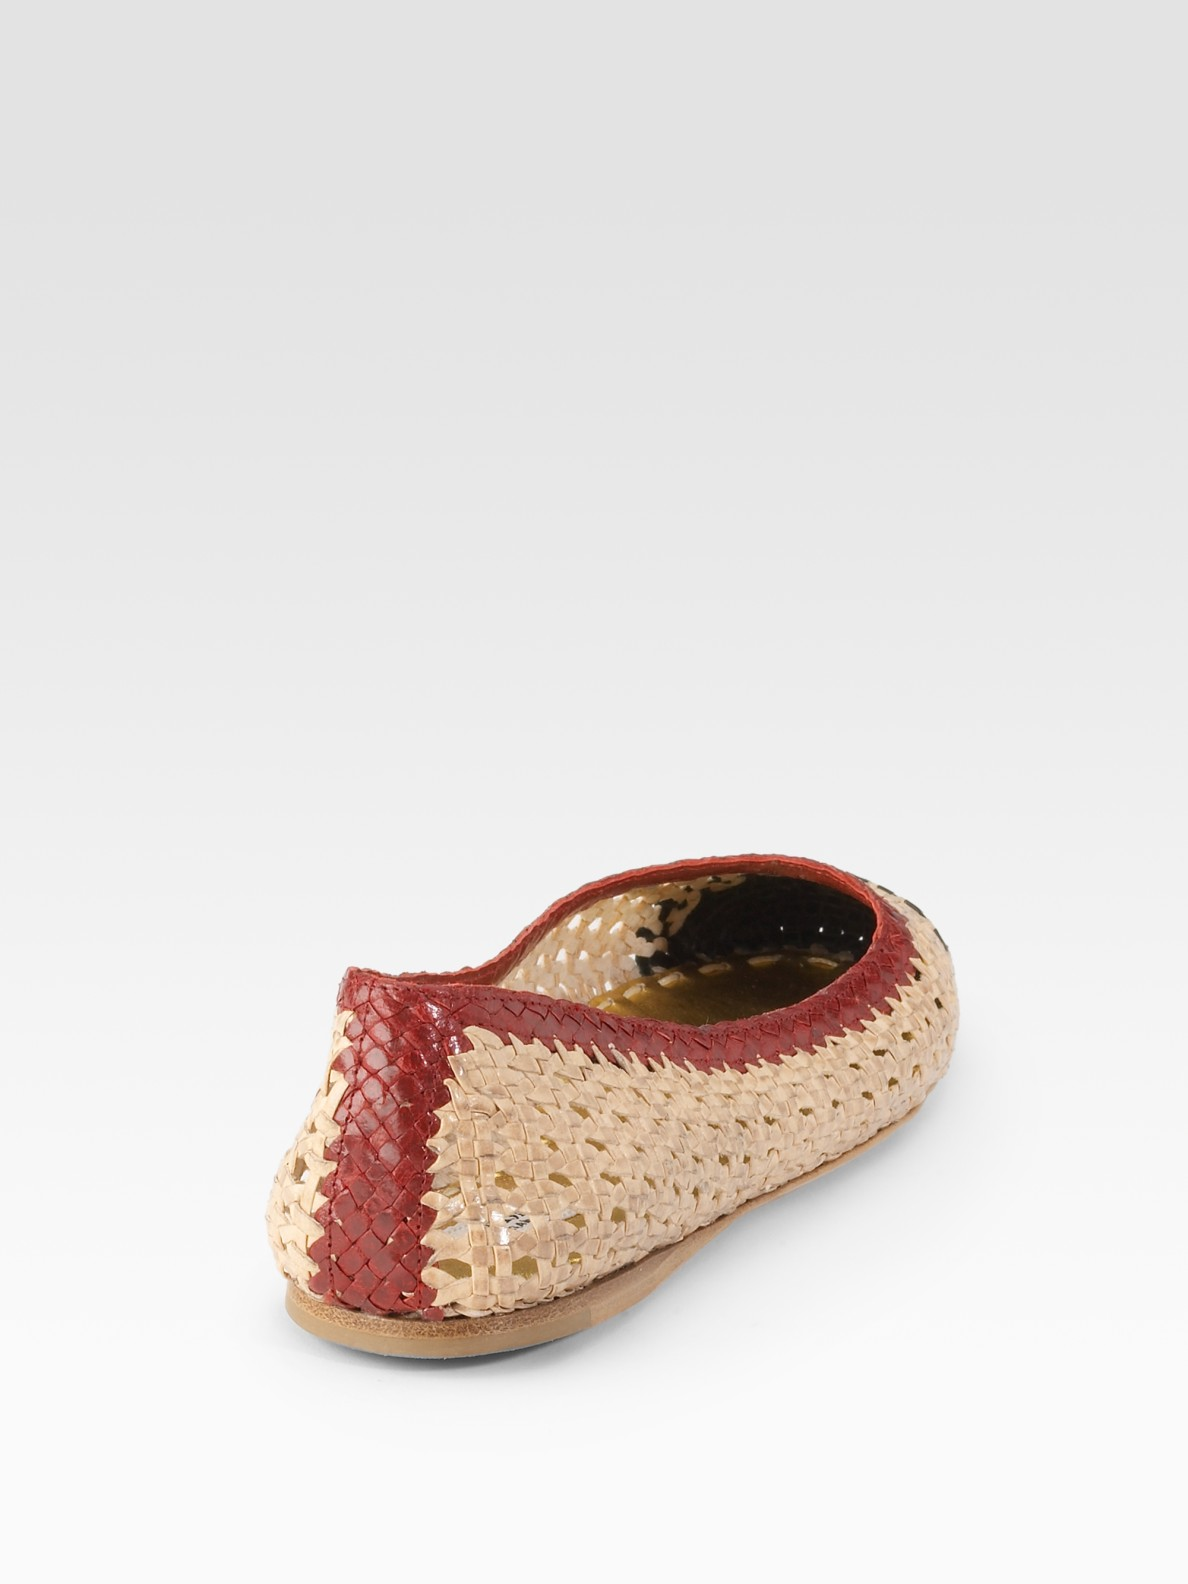 Prada Leather Woven Flats free shipping best sale 2014 cheap online limited edition sale online free shipping fashionable CQT62IWJhf